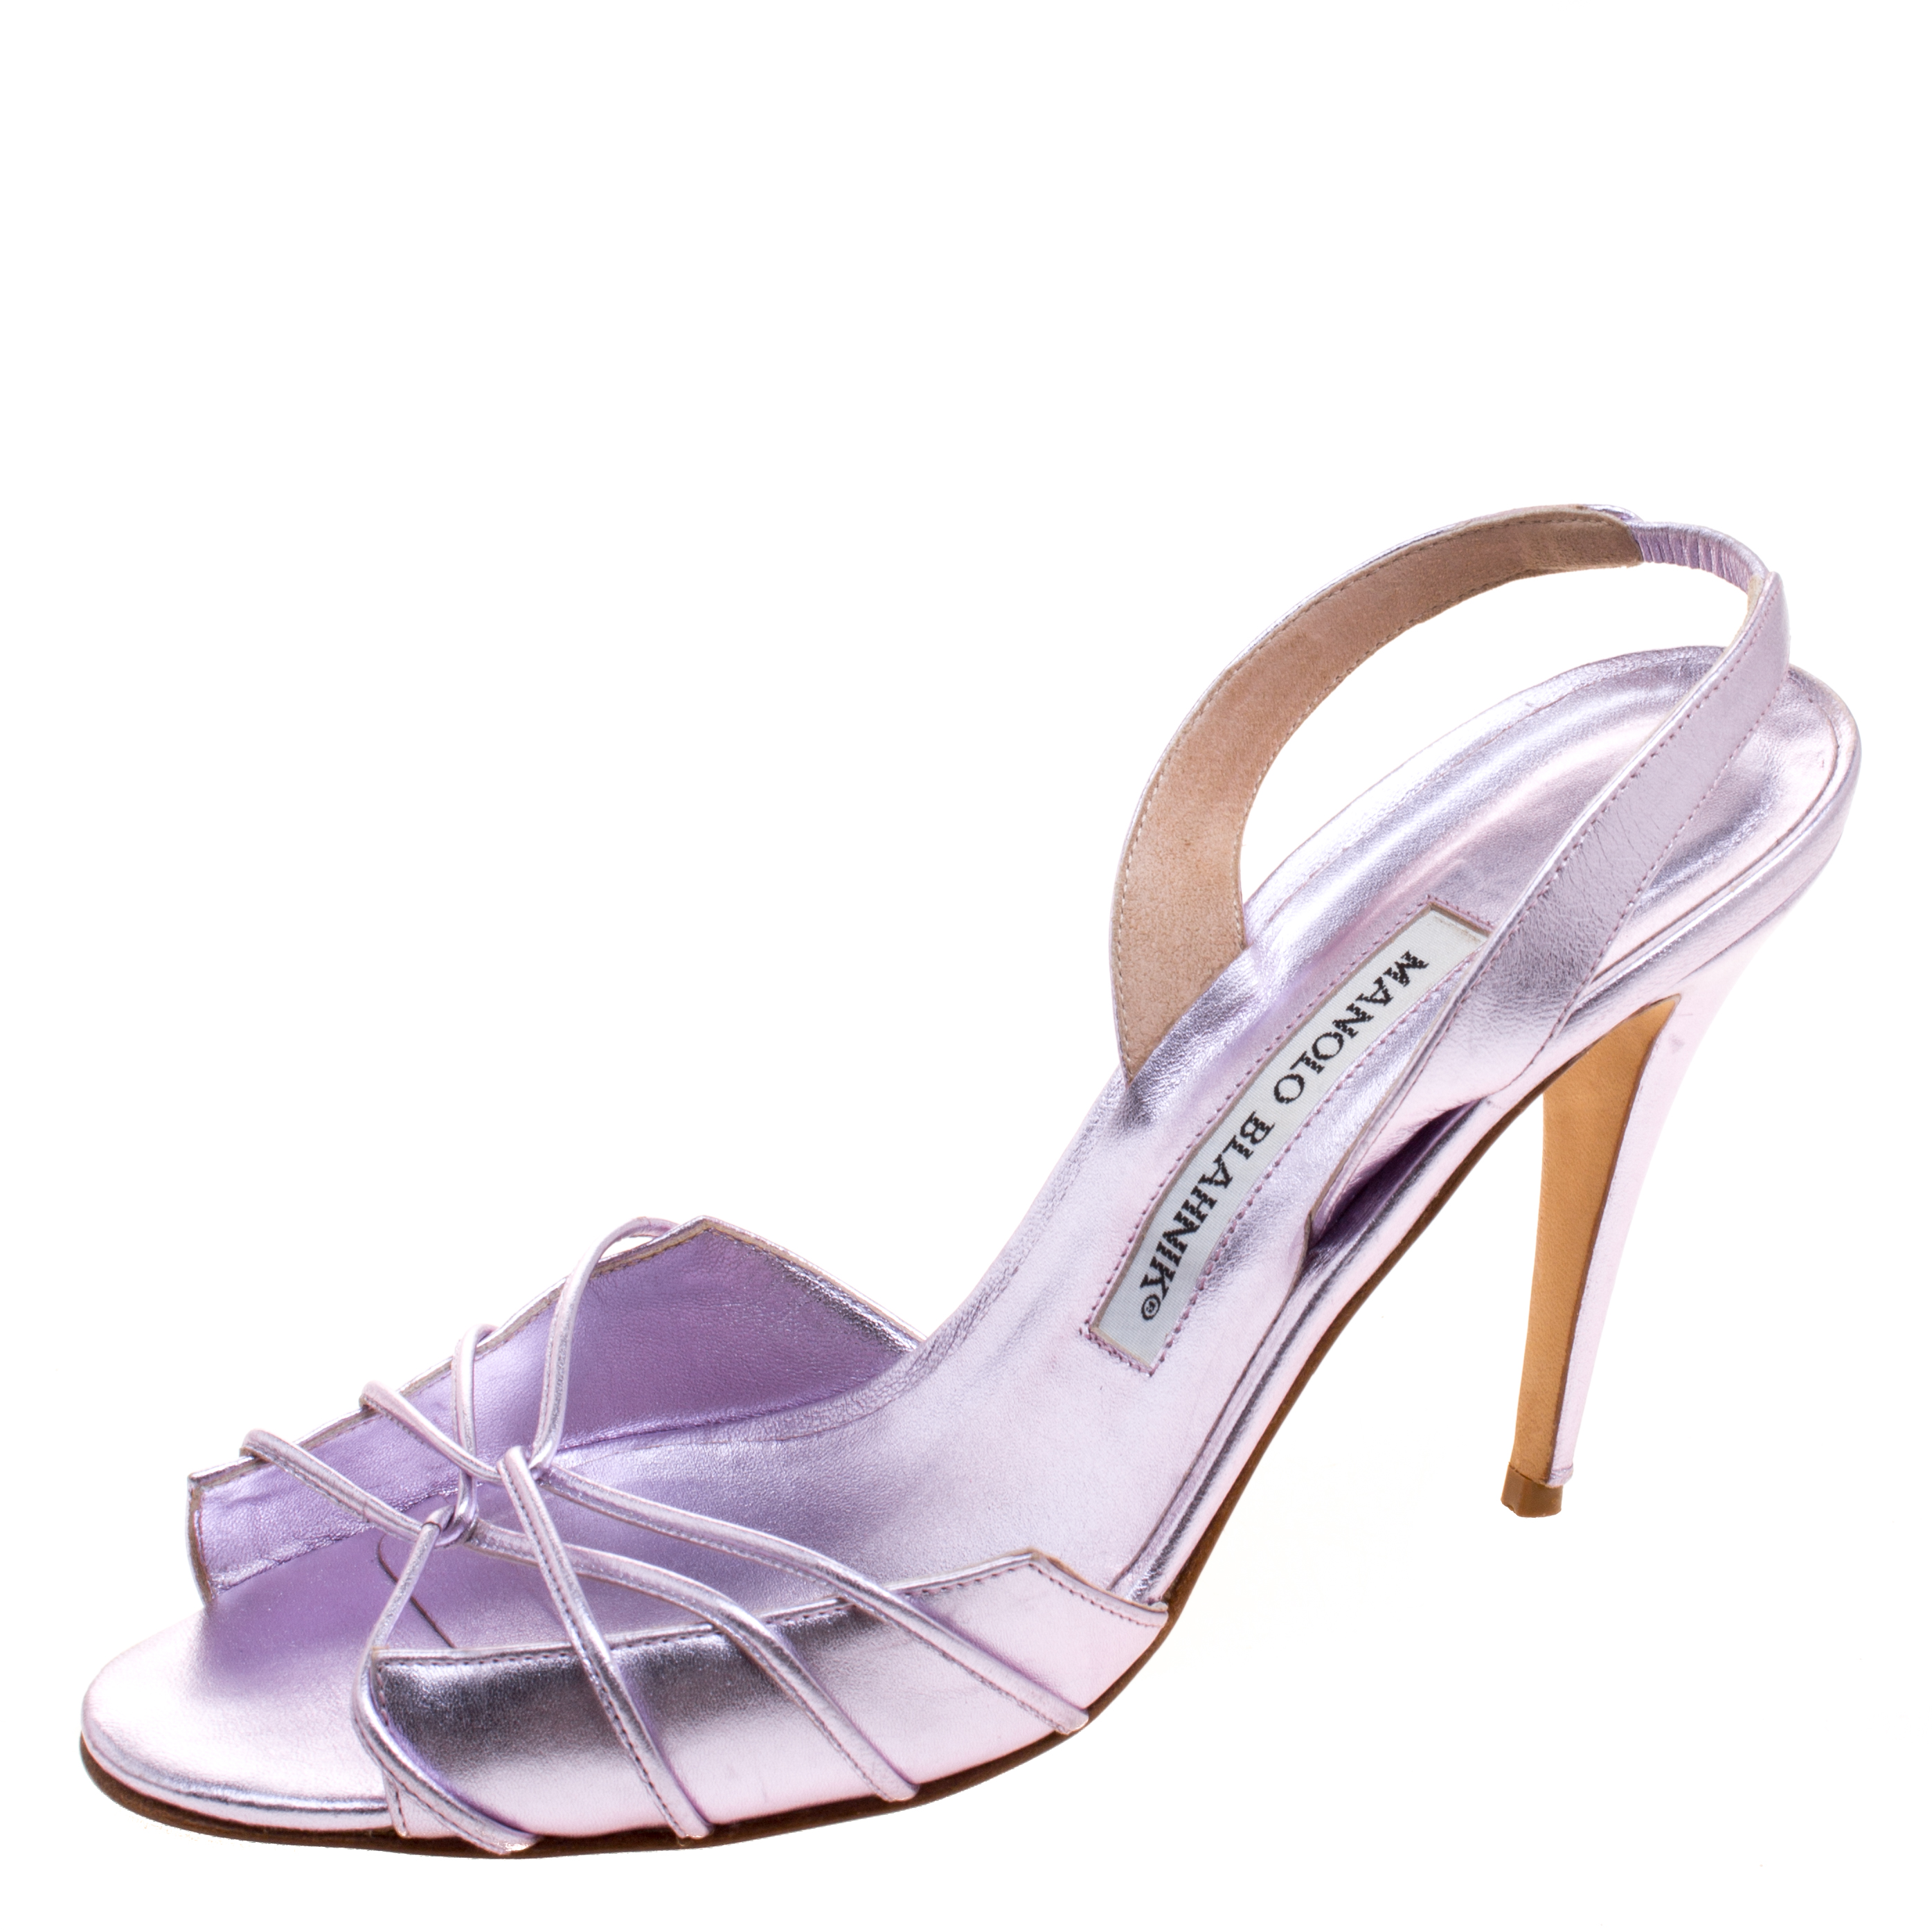 buy popular b488f d6ccd Buy Manolo Blahnik Metallic Purple Leather Open Toe Slingback ...